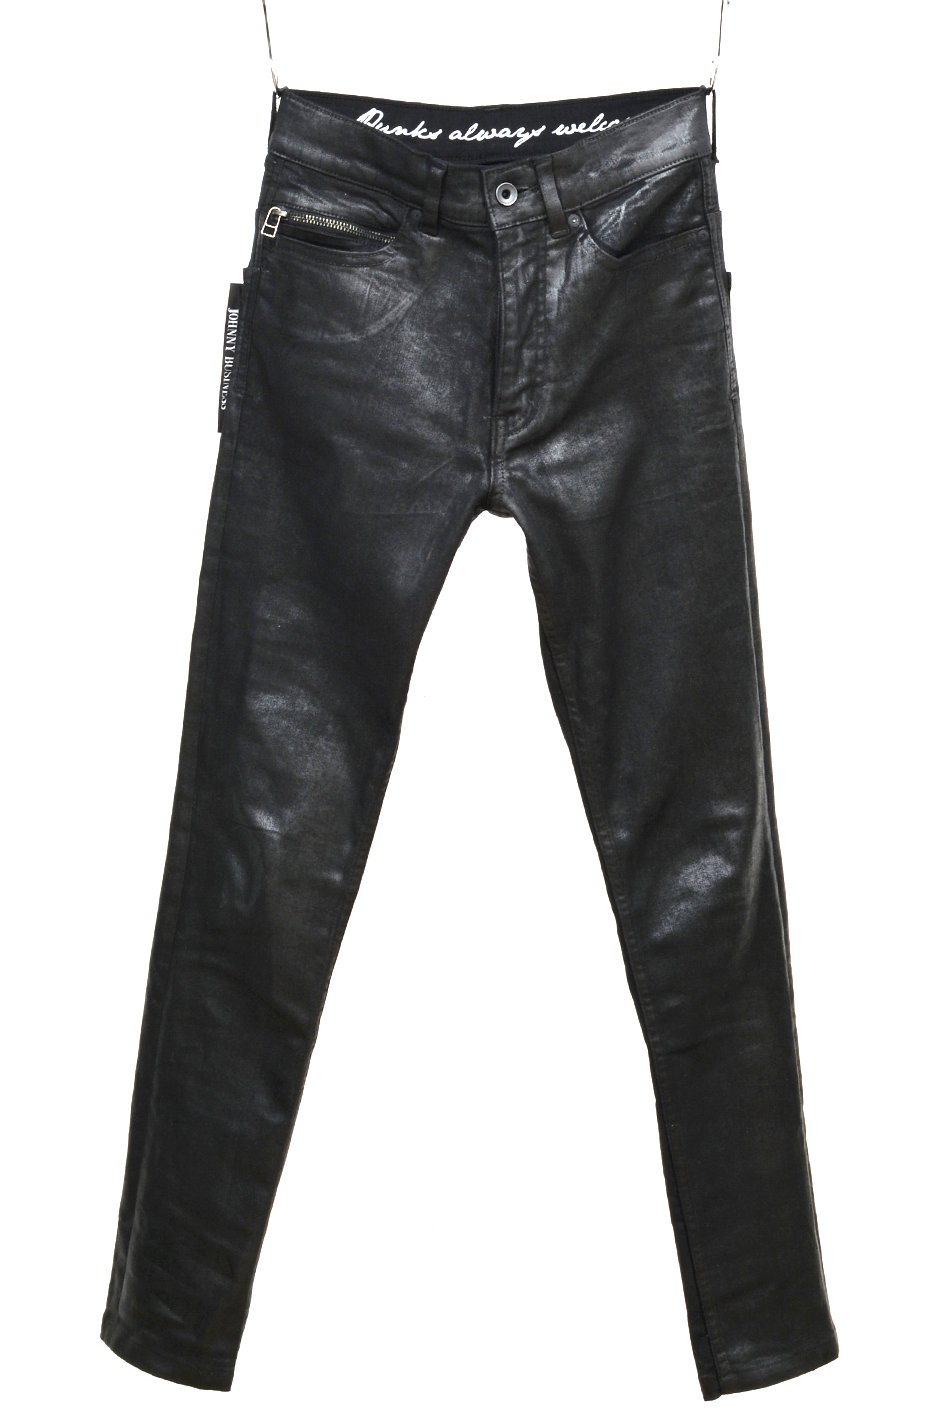 JOHNNY BUSINESS(ジョニービジネス )JB Super ST Denim Pants / Oiled